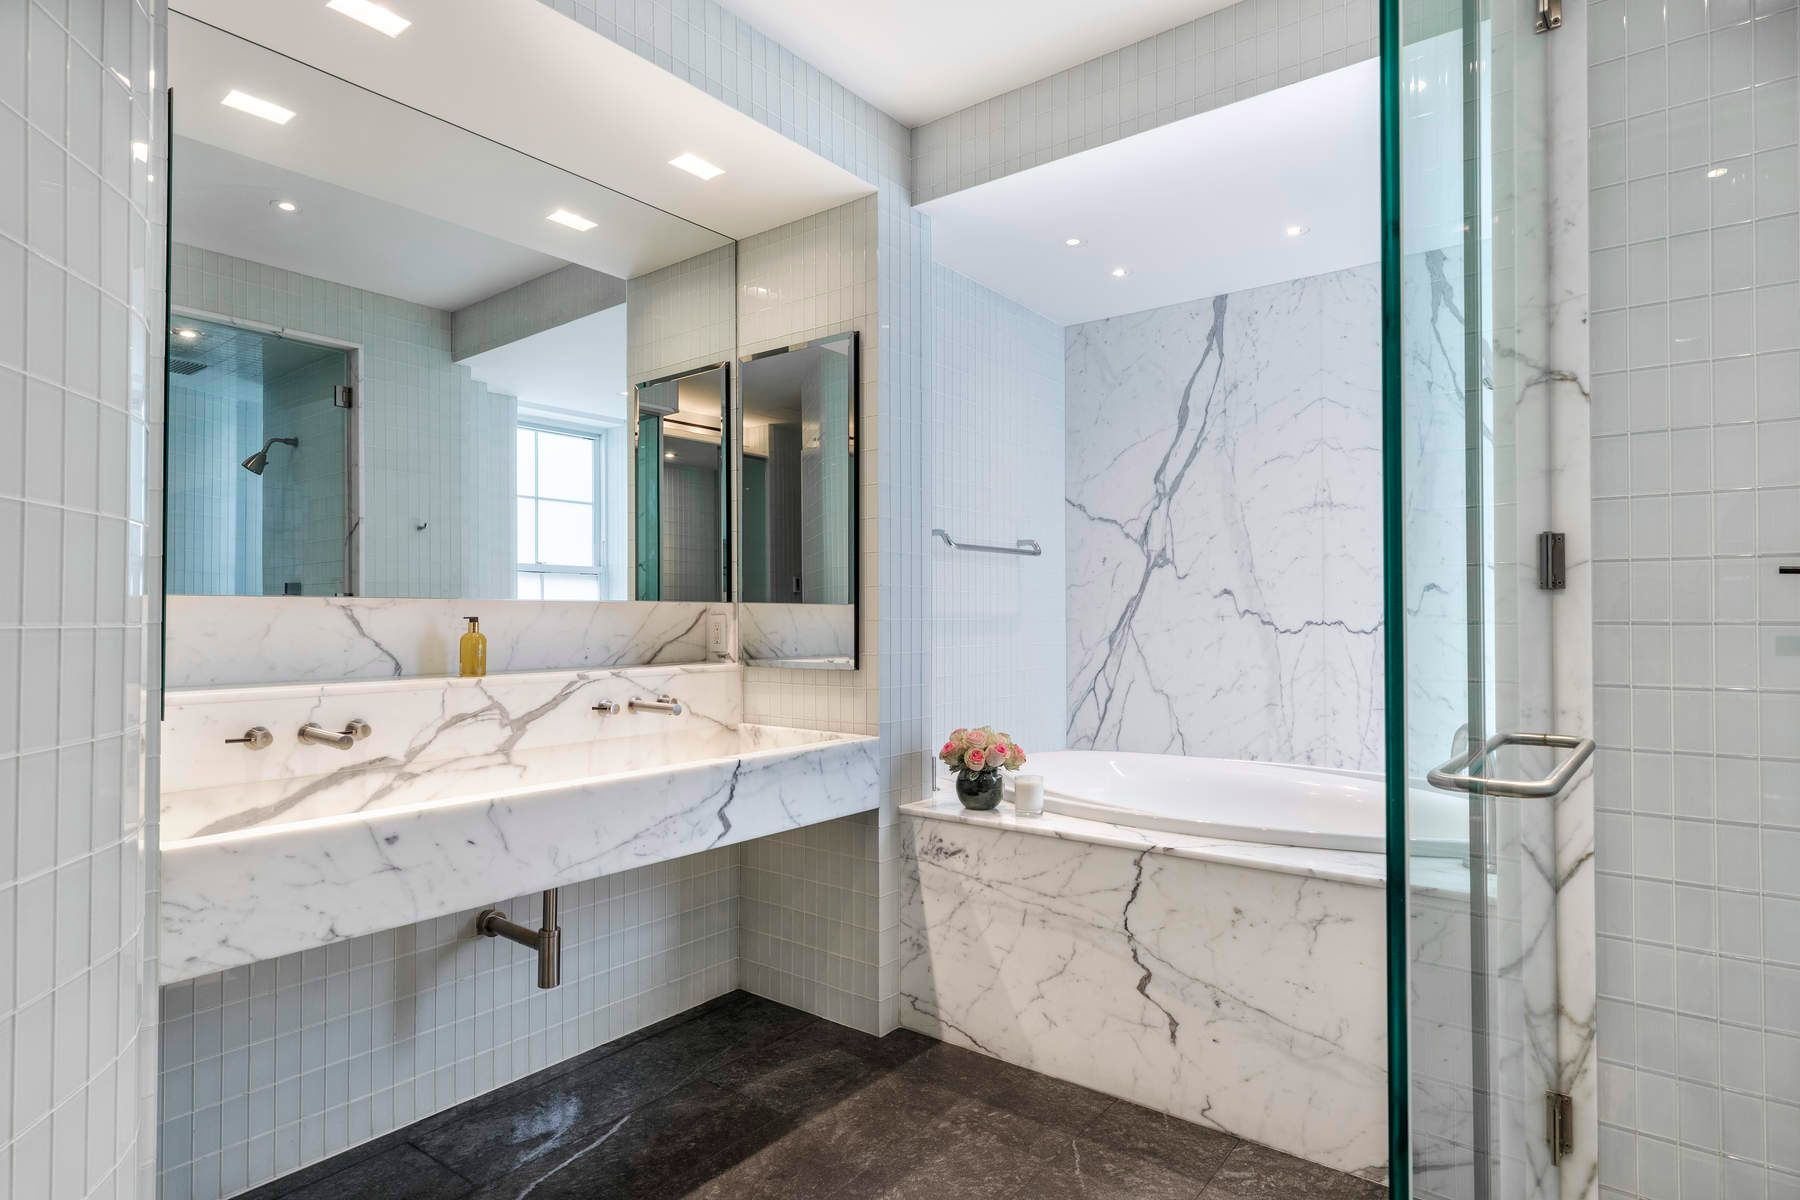 Additional photo for property listing at 333 Central Park West, PH121-122 333 Central Park West PH121-22 New York, New York 10025 United States